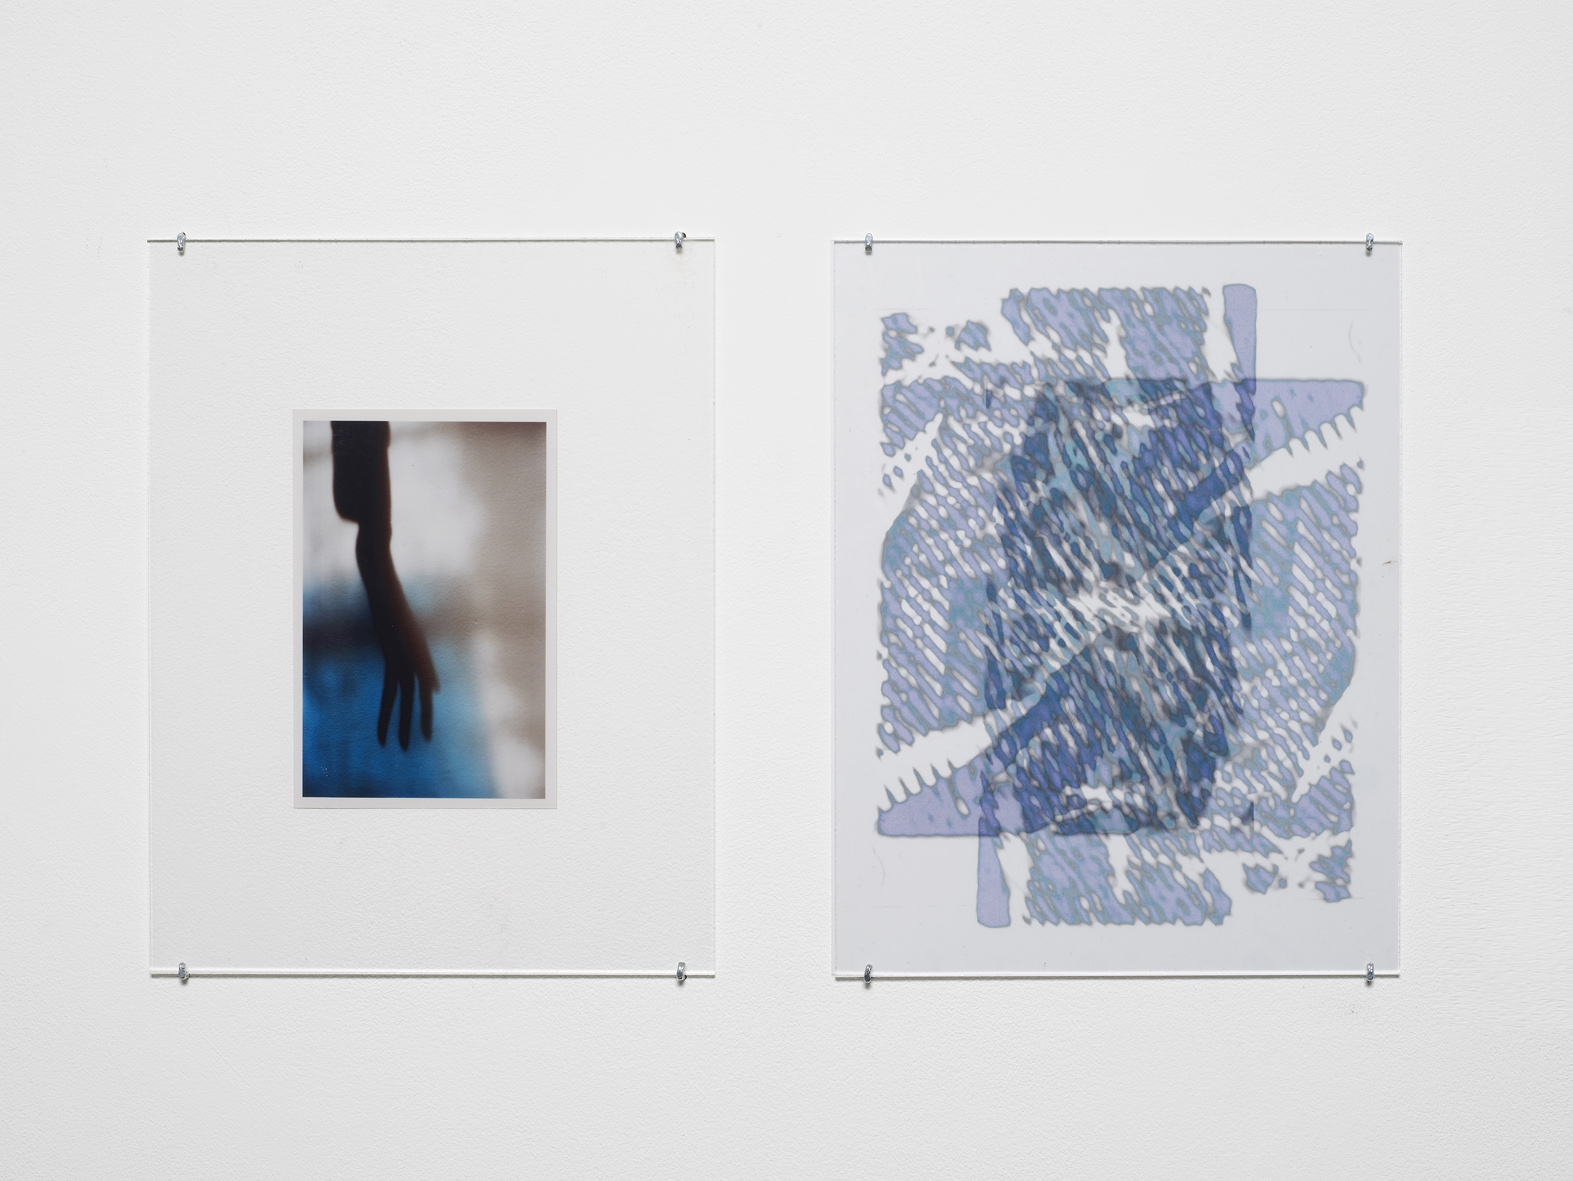 Untitled 2014-2015 Unique C-print, inkjet print on two transparencies, non-reflective perspex, L shaped pins  2 parts, each: 27.9 x 21.5 cm / 11 x 8.5 in